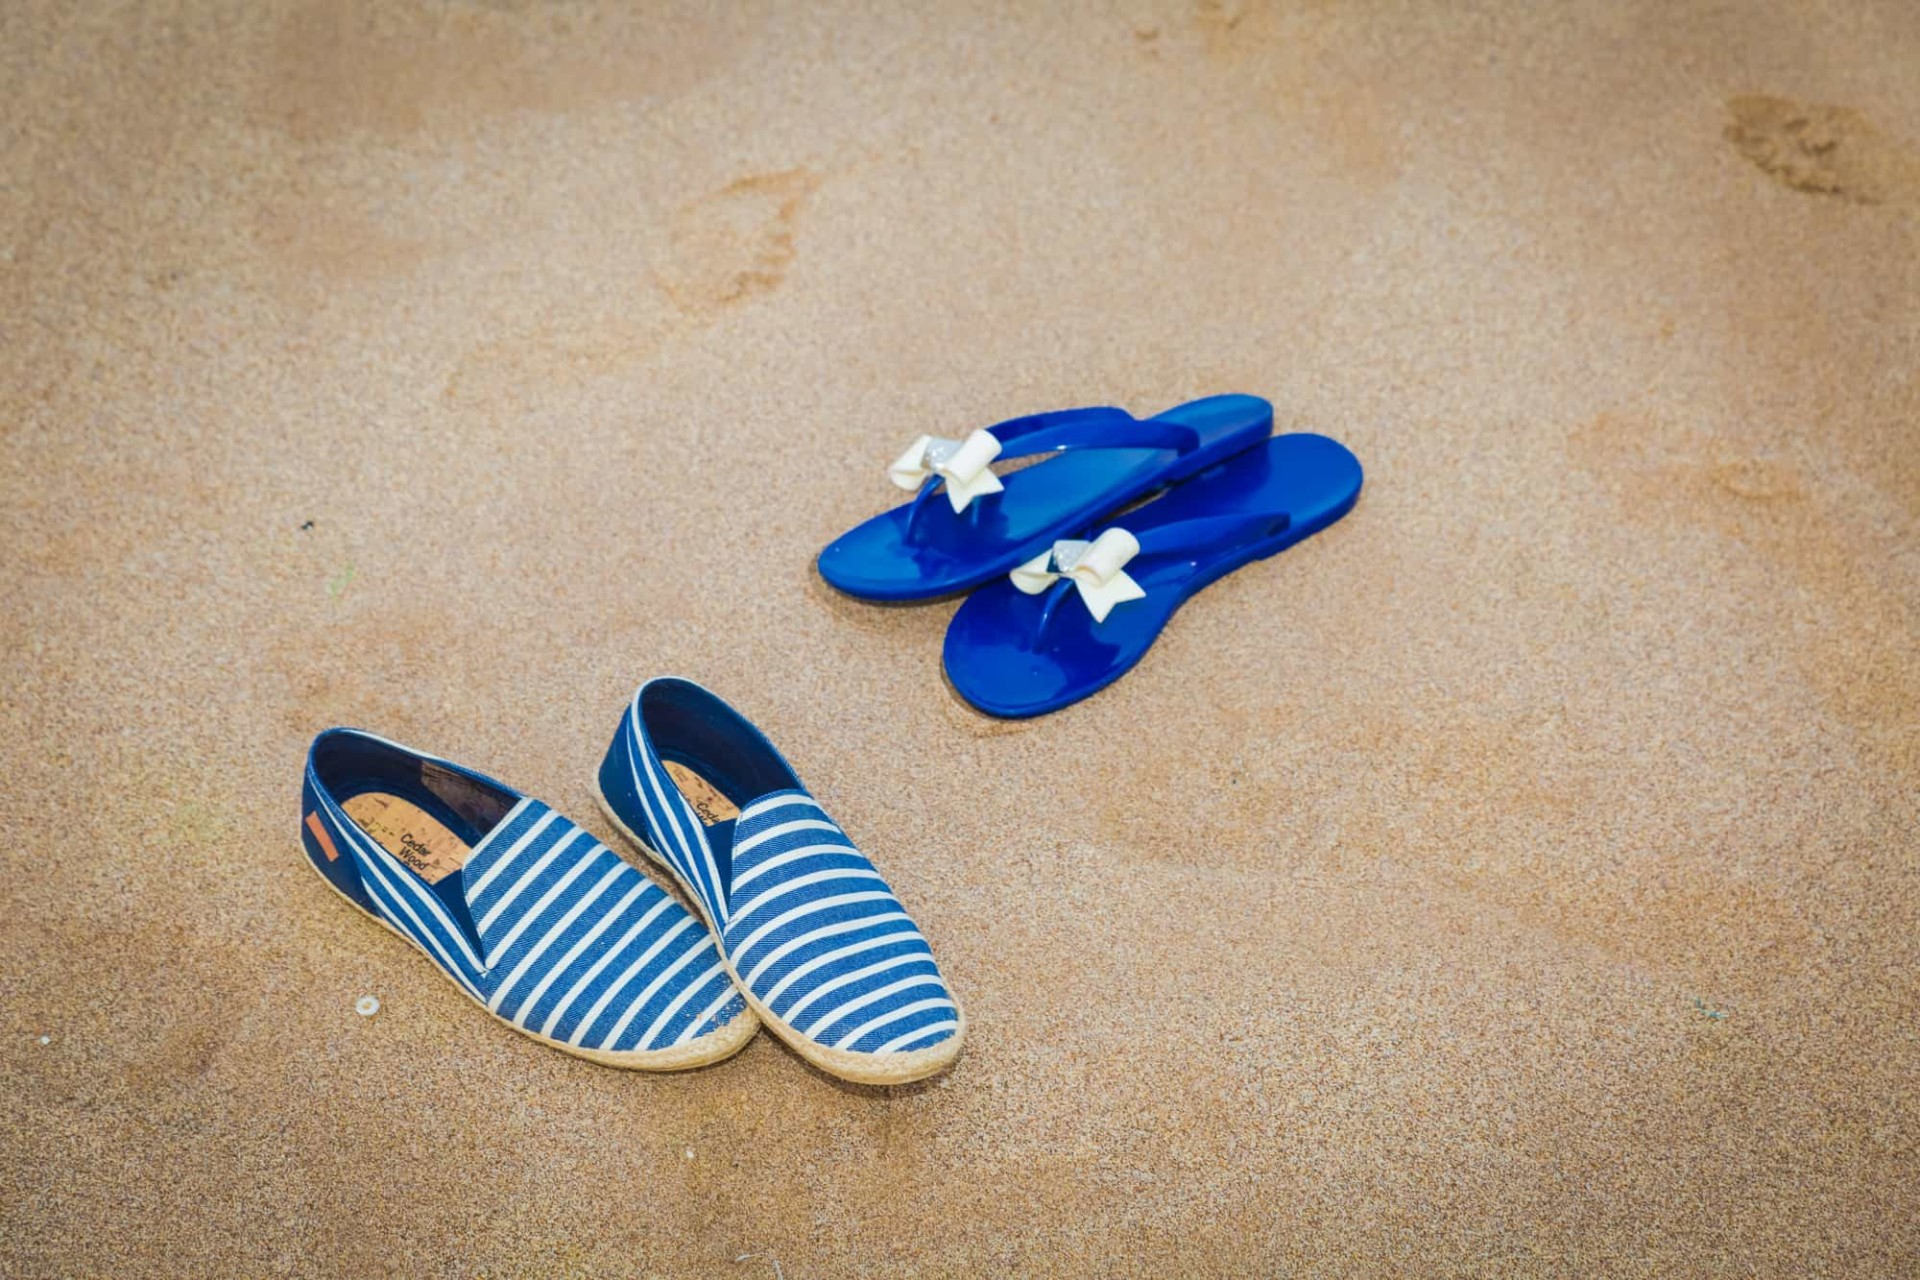 What Are the Best Types Of Shoes To Wear on the Beach?